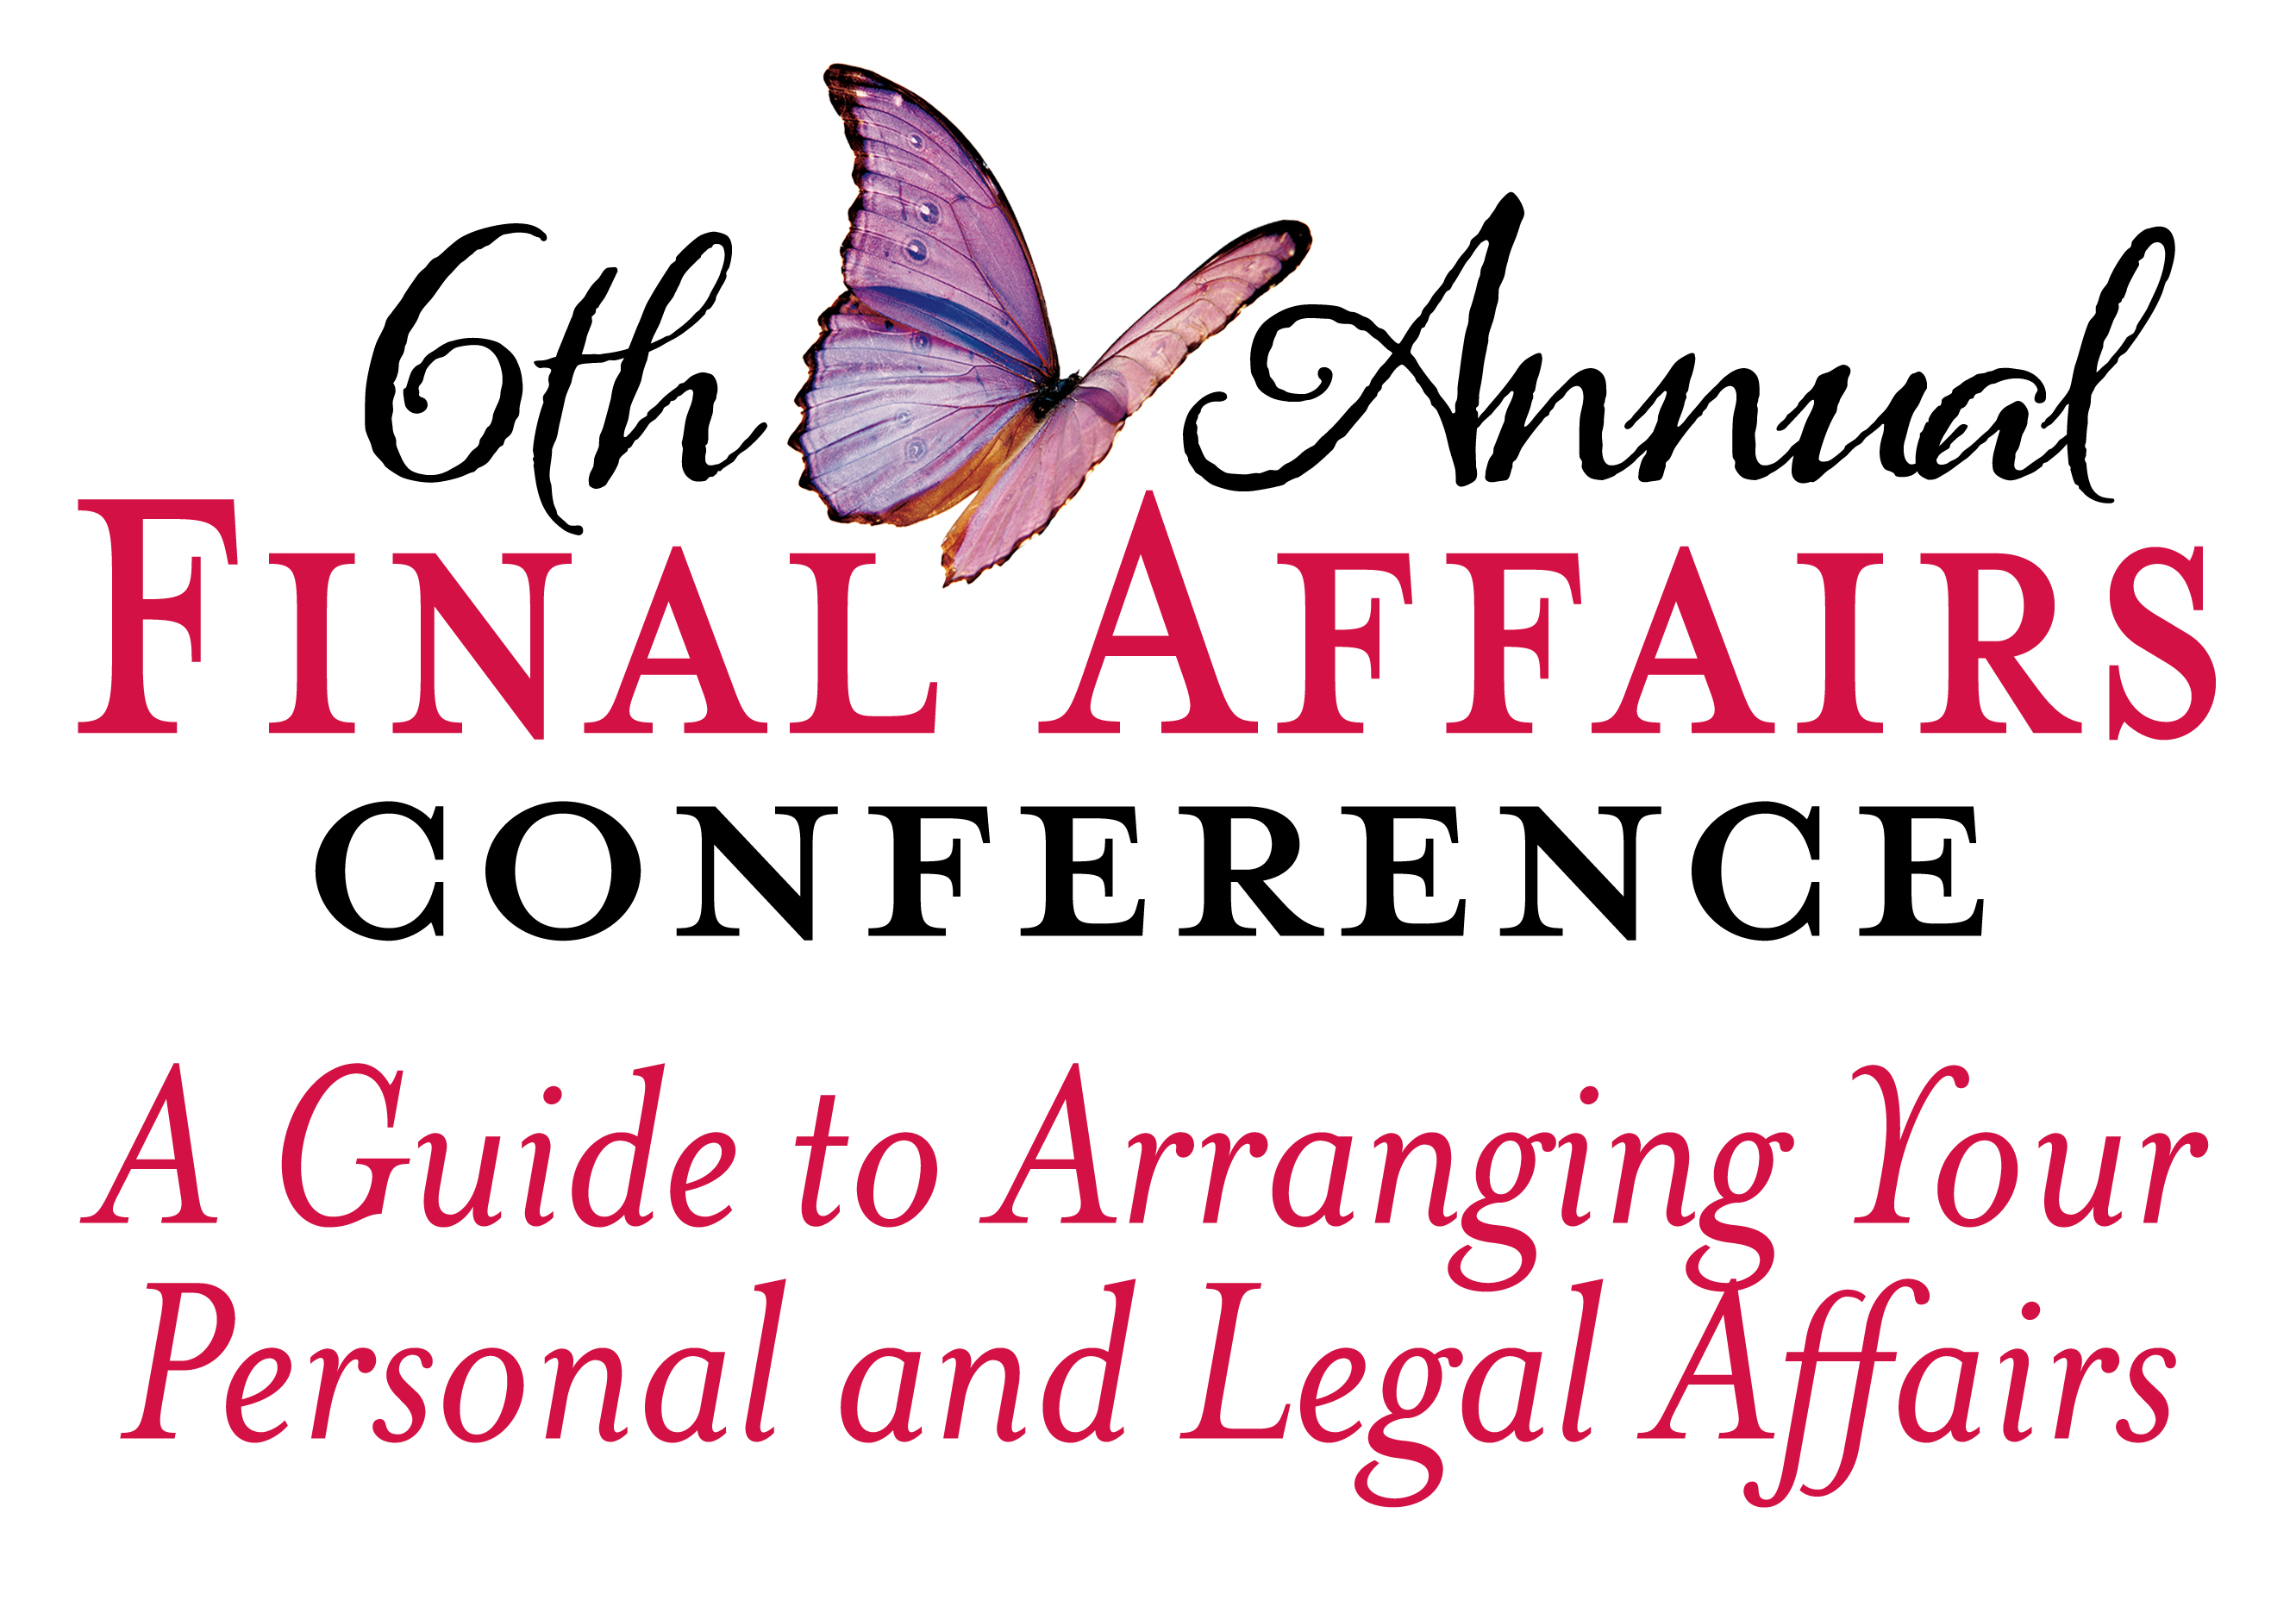 6th Annual Final Affairs Conference: A Guide to Arranging Your Personal and Legal Affairs